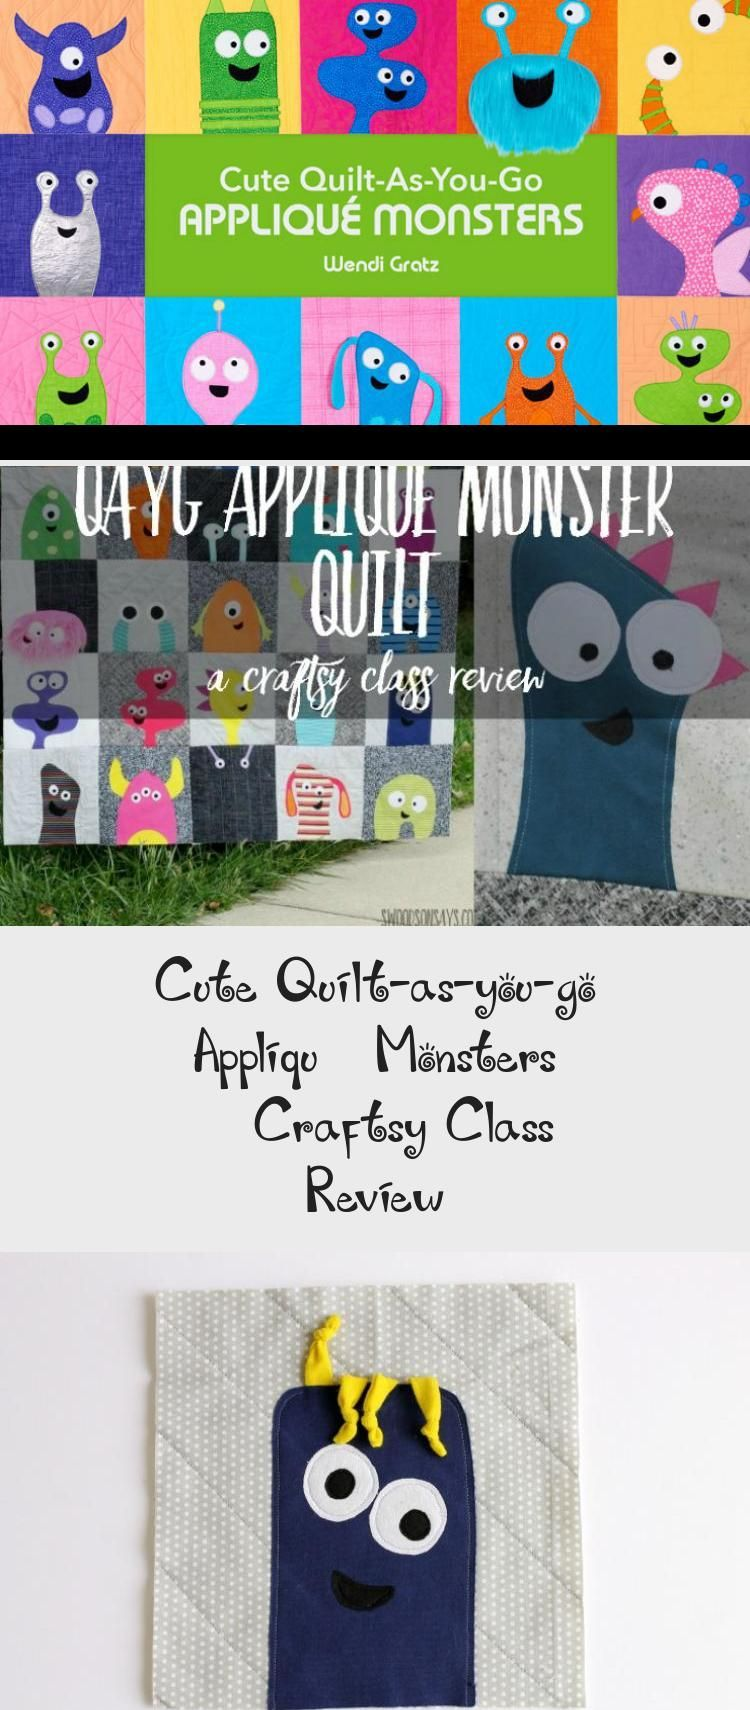 Cute QuiltAsYouGo Appliqué Monsters  easy quilt for beginners to sew from fabric scraps Video quilt class  pattern to make this fun quilt for kids